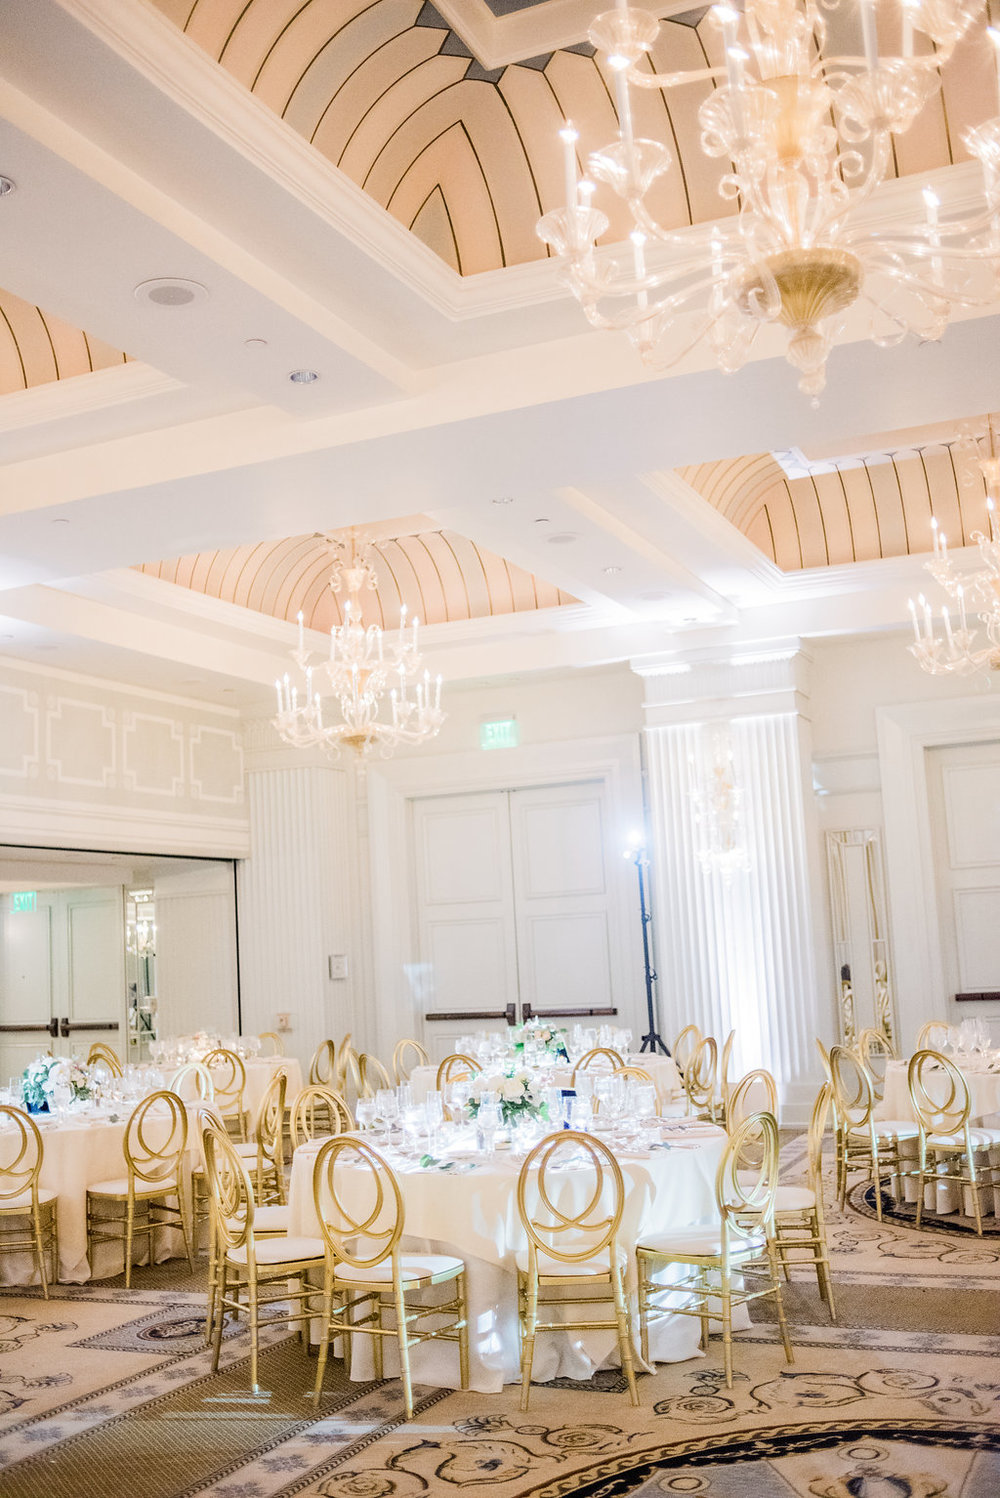 ASHLEYSUN_WEDDING_SANTAMONICA-818.jpg